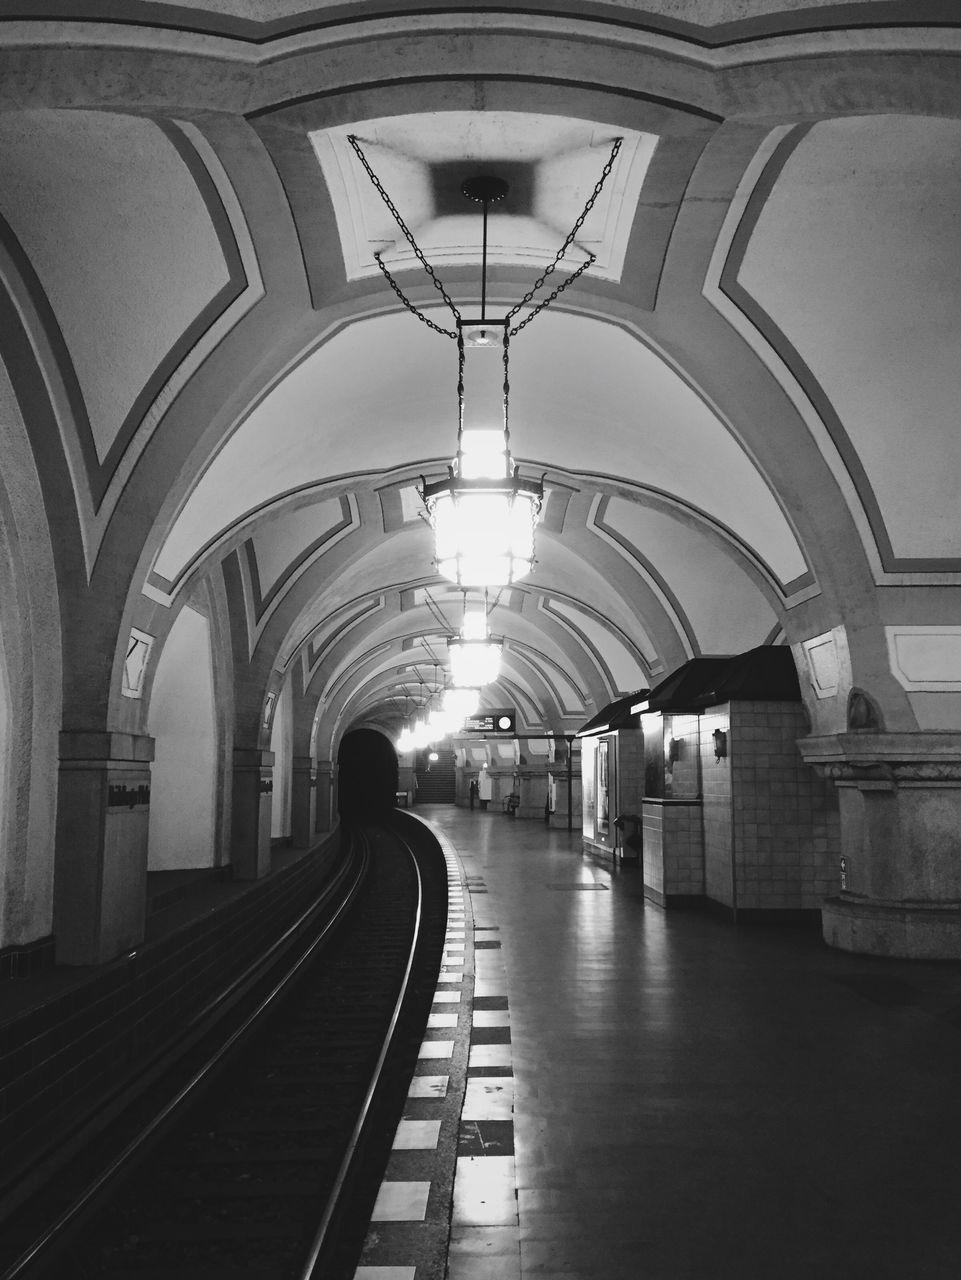 arch, transportation, the way forward, rail transportation, built structure, indoors, architecture, illuminated, railroad station, real people, travel, public transportation, railroad track, one person, day, people